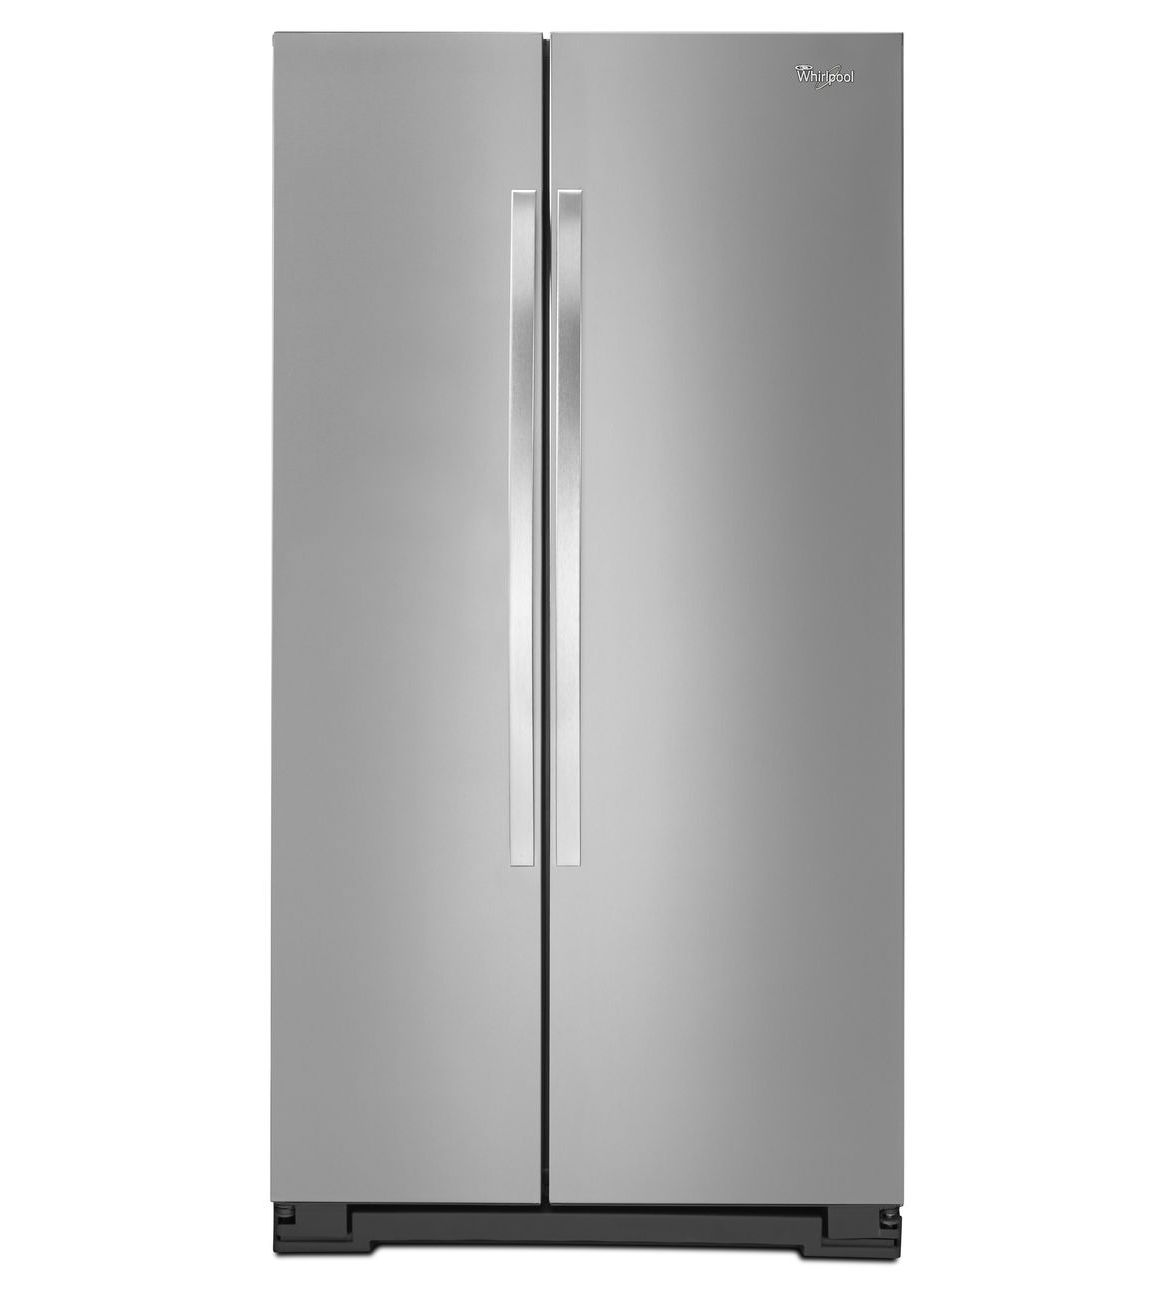 Whirlpool 36 Inch Wide Large Side By Side Refrigerator